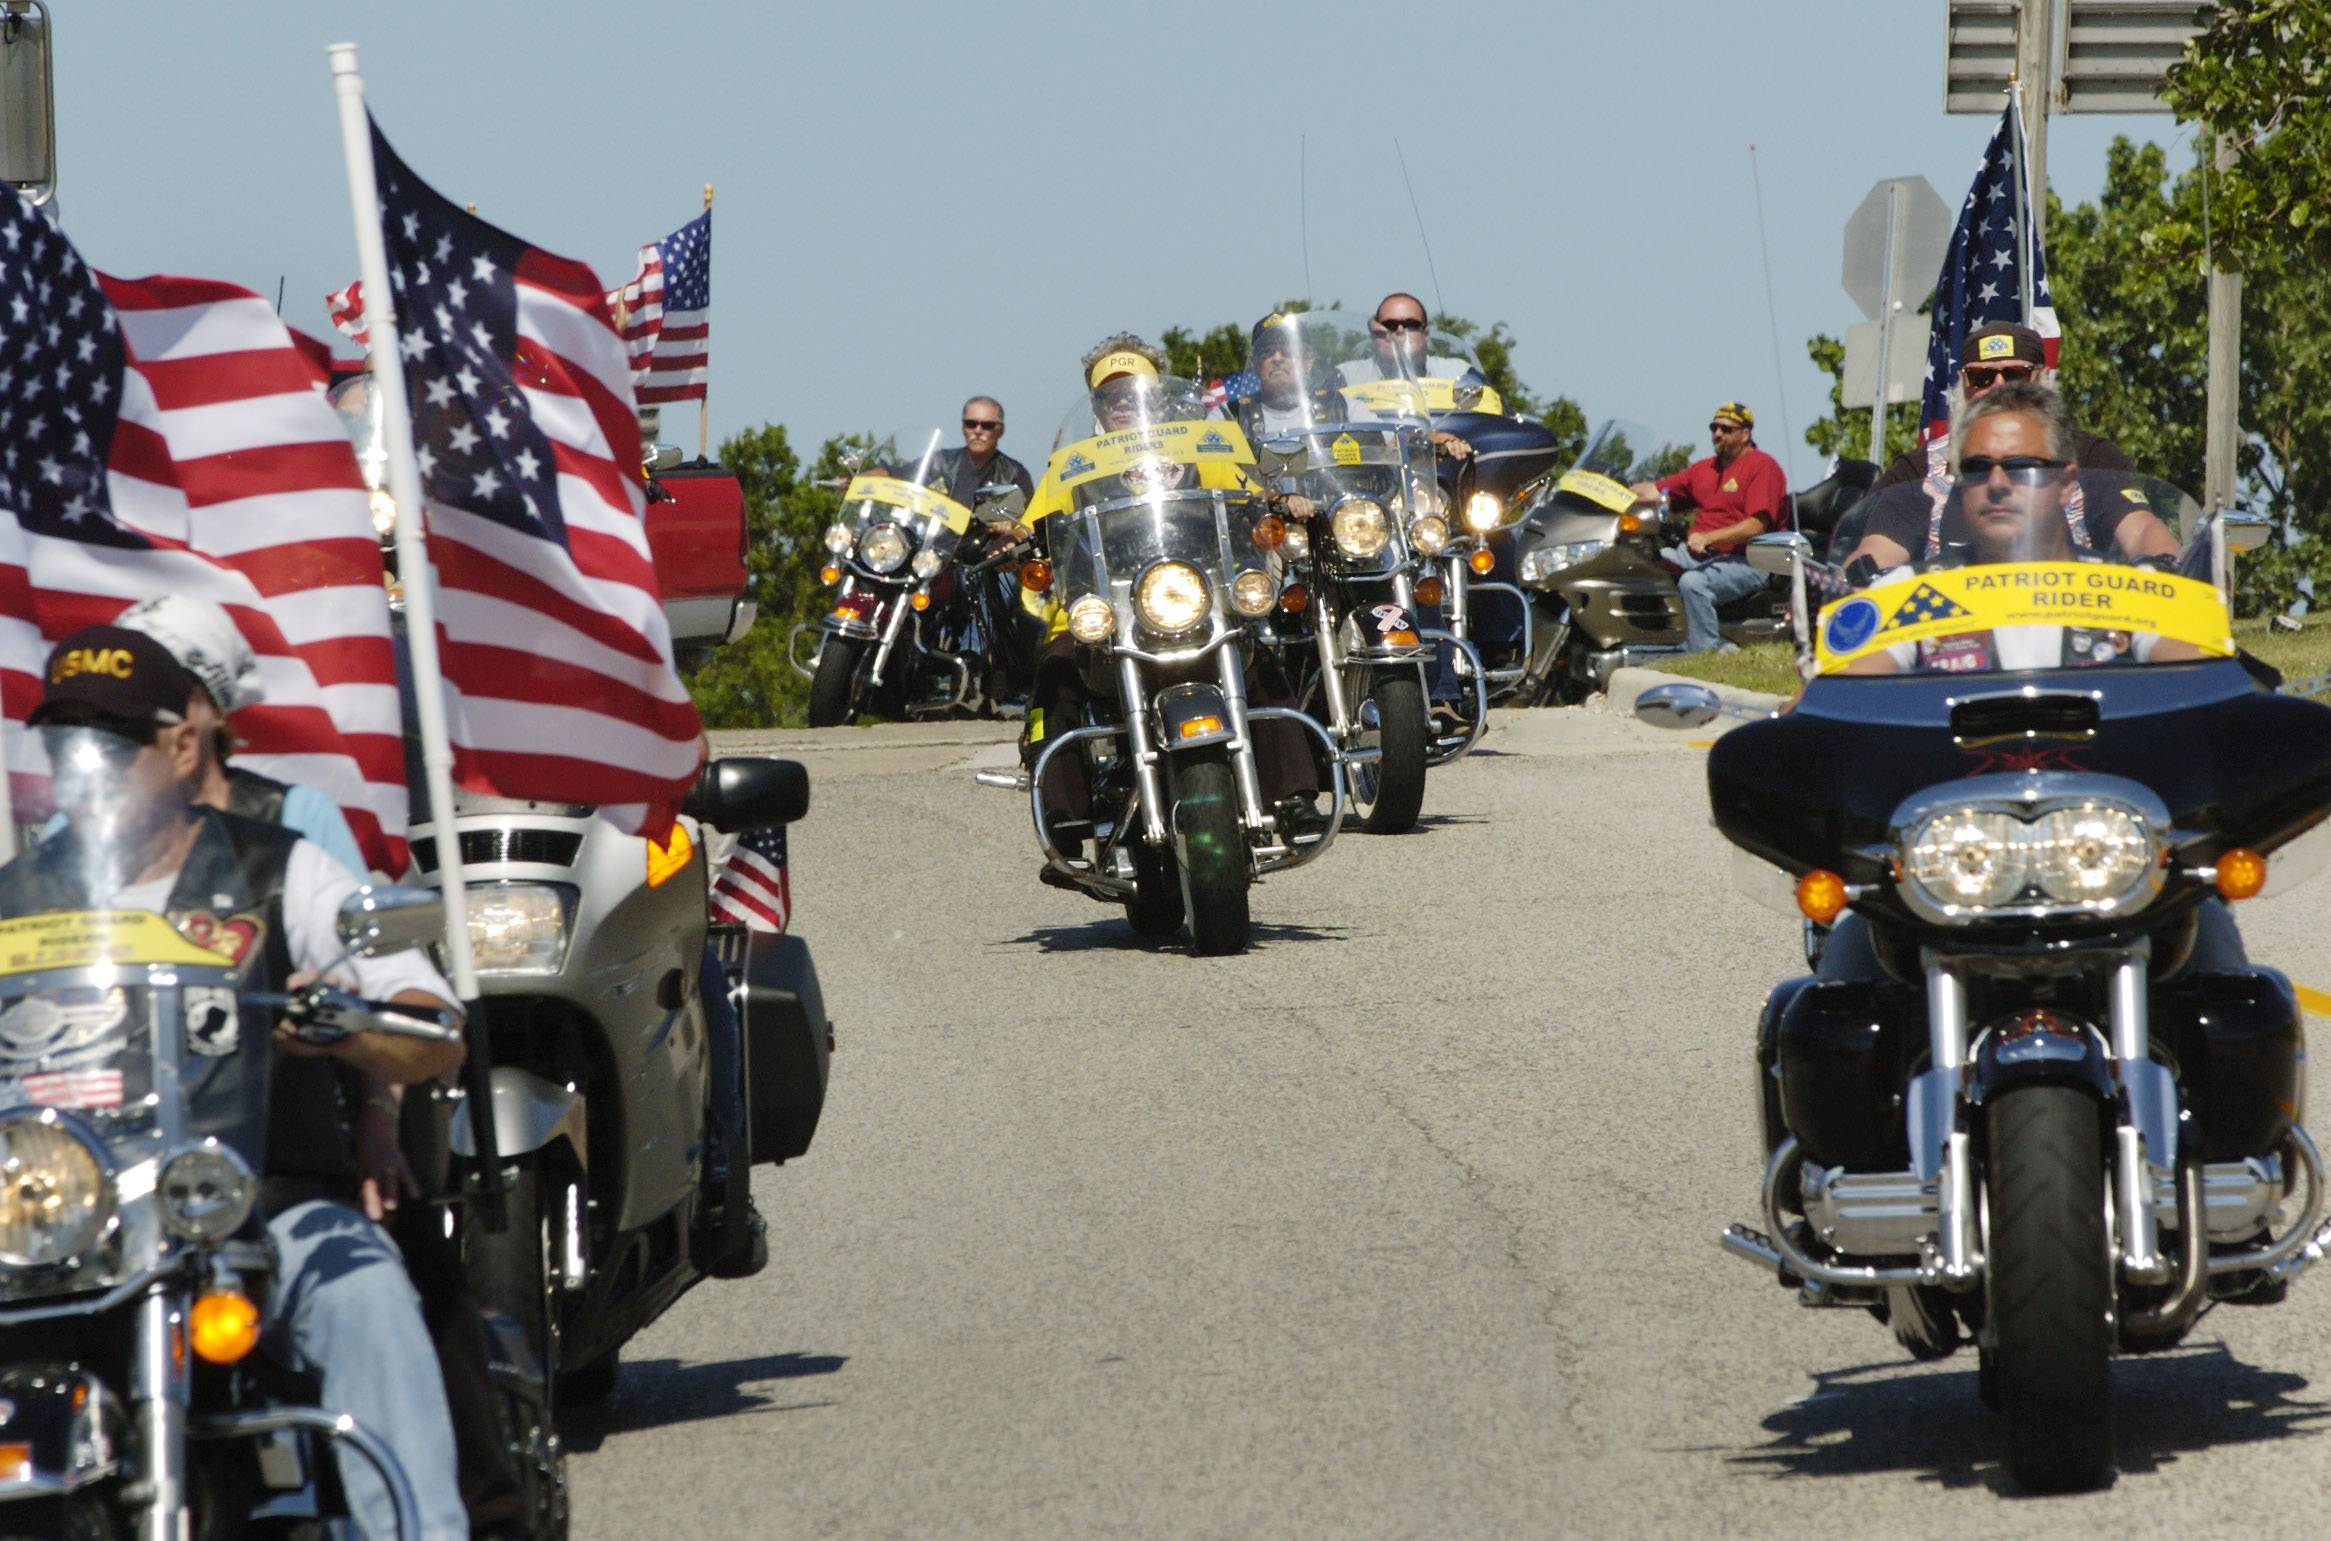 Patriot Guard Riders escort Palatine resident and U.S. Army SPC Patrick O'Connor from the Des Plaines oasis upon returning home on leave from Iraq.